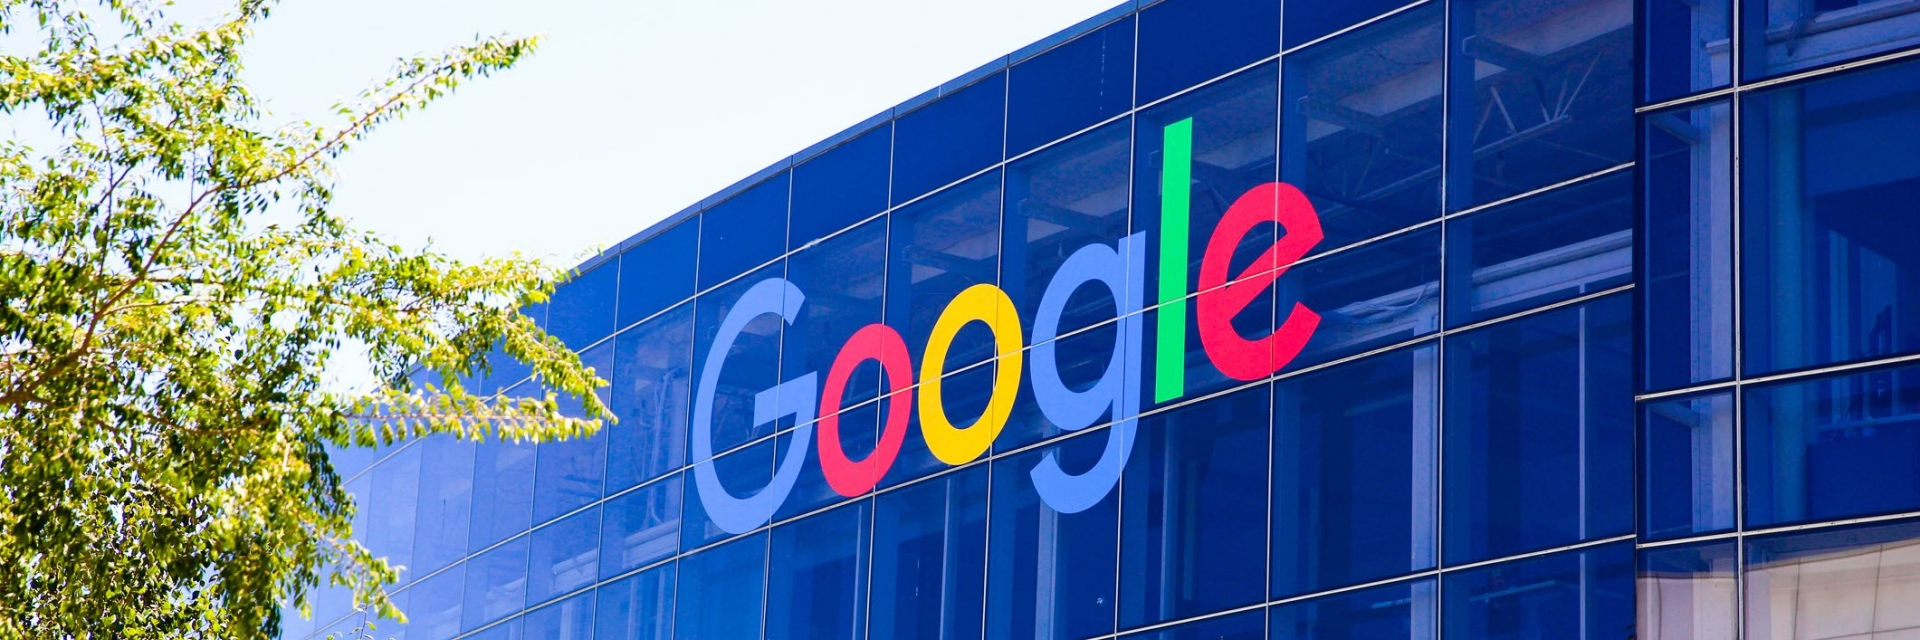 google_search_banner